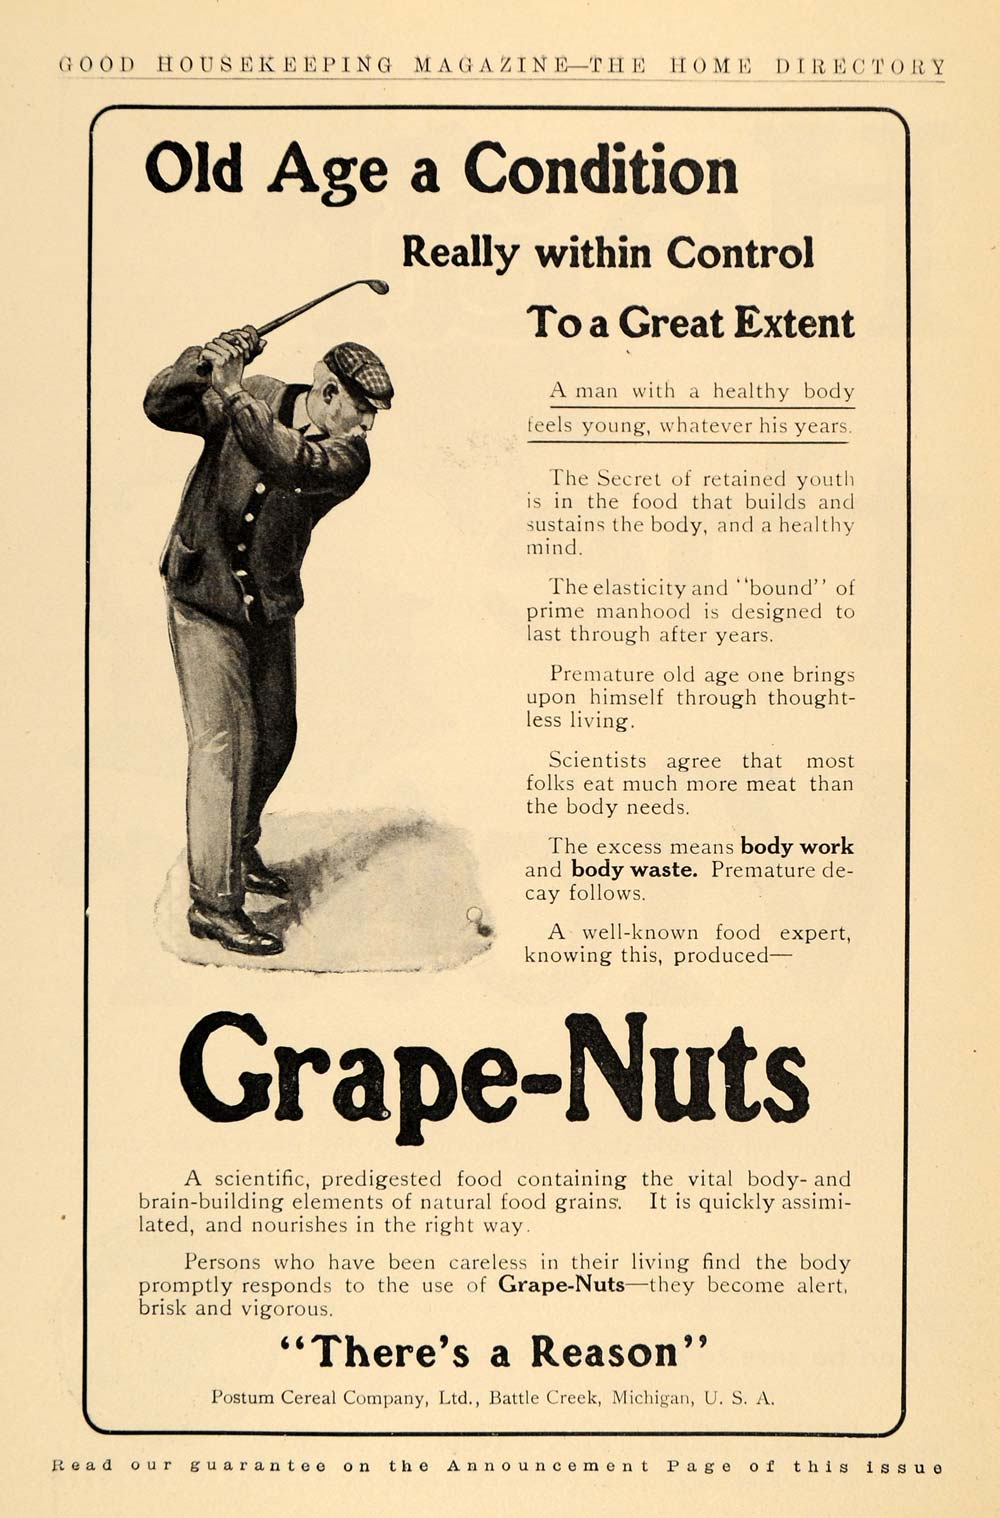 1910 Ad Grape Nuts Golfer Postum Cereal Company Ltd - ORIGINAL ADVERTISING GH2